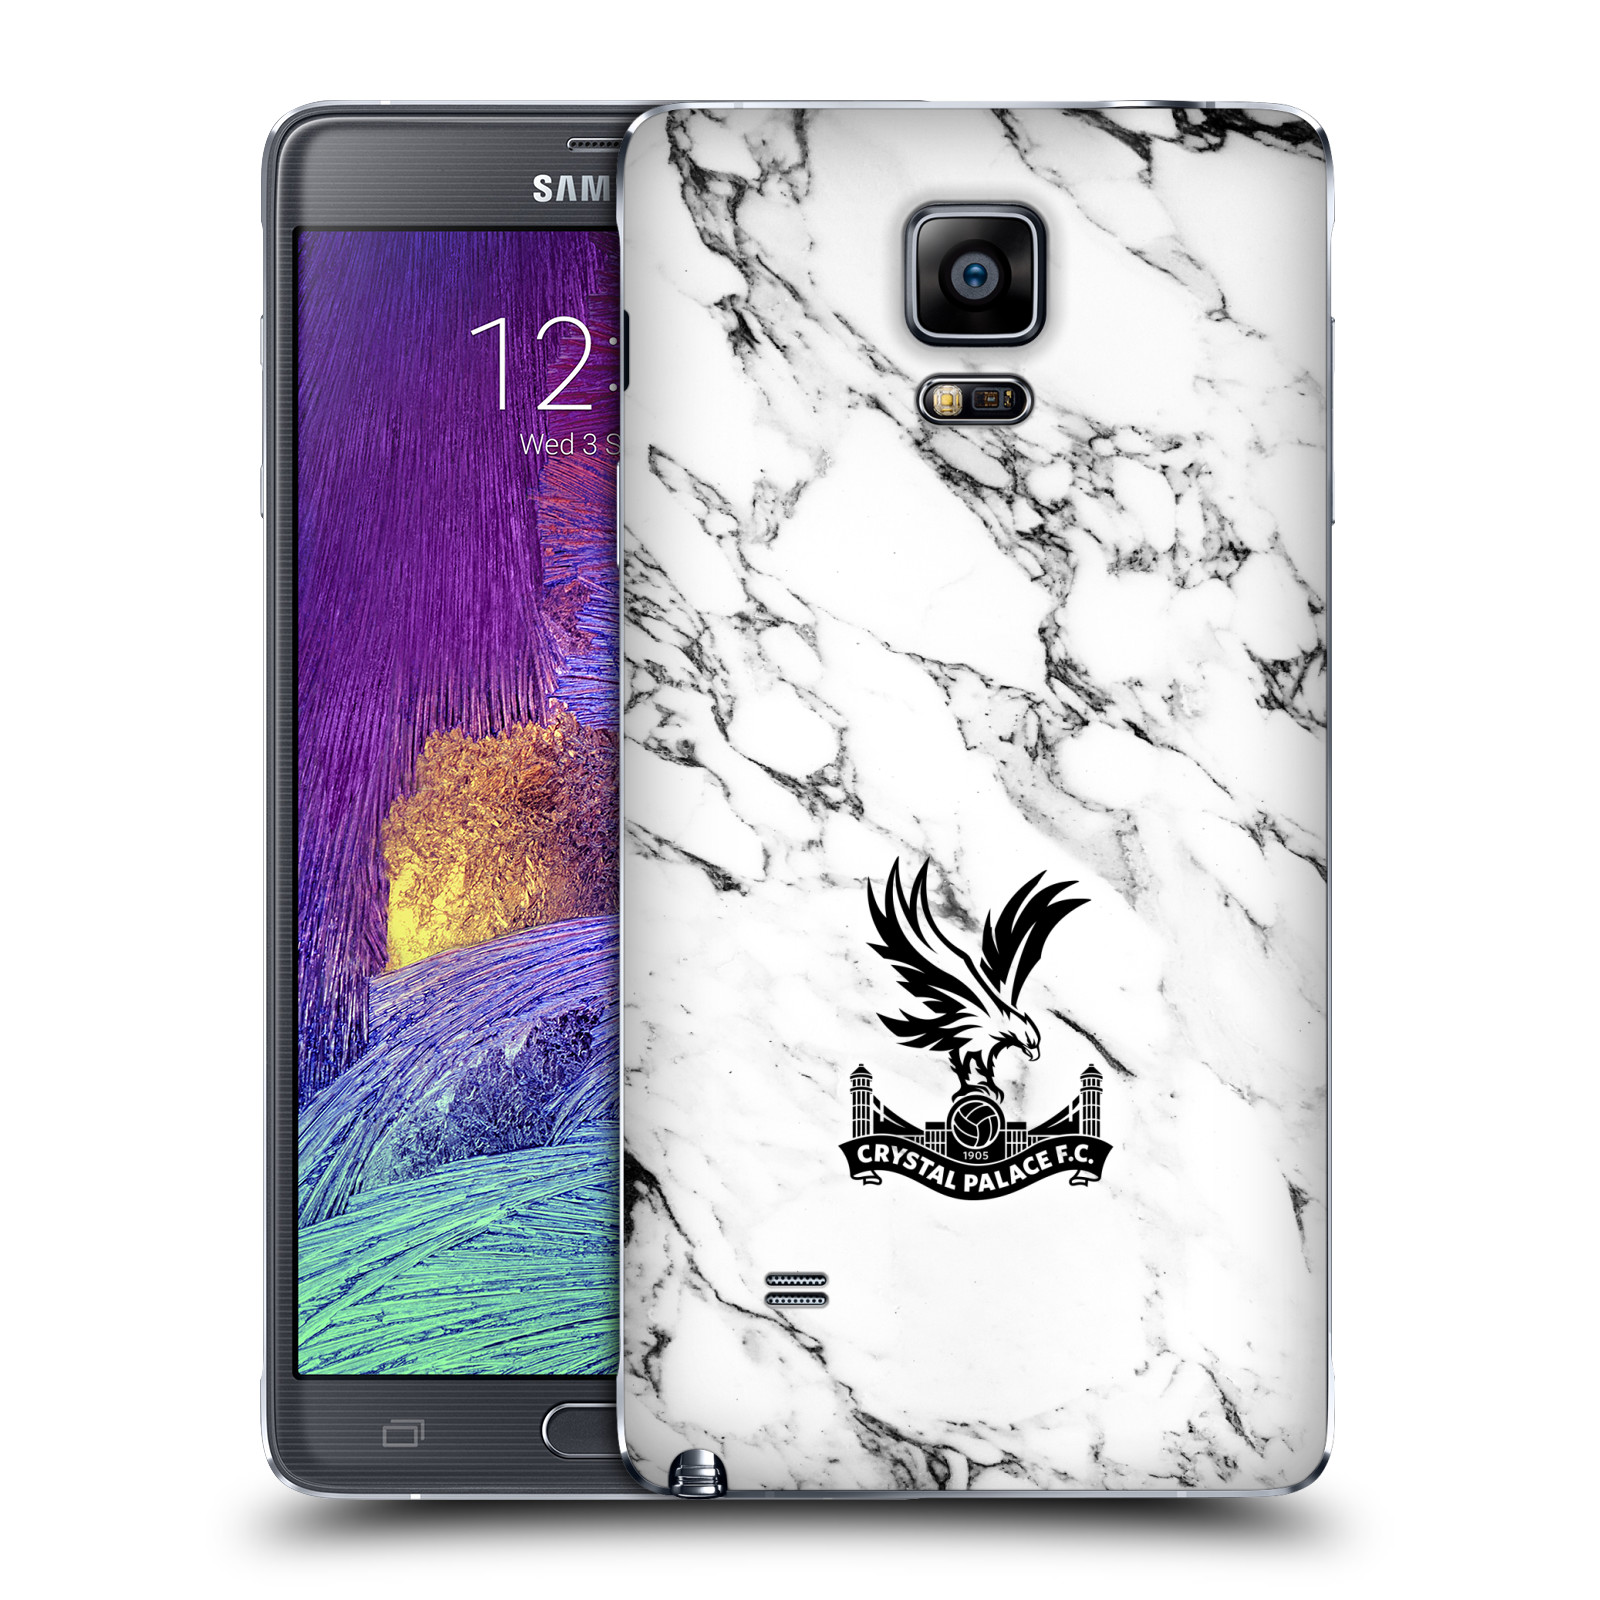 OFFICIAL-CRYSTAL-PALACE-FC-2017-18-MARBLE-BATTERY-COVER-FOR-SAMSUNG-PHONES-1